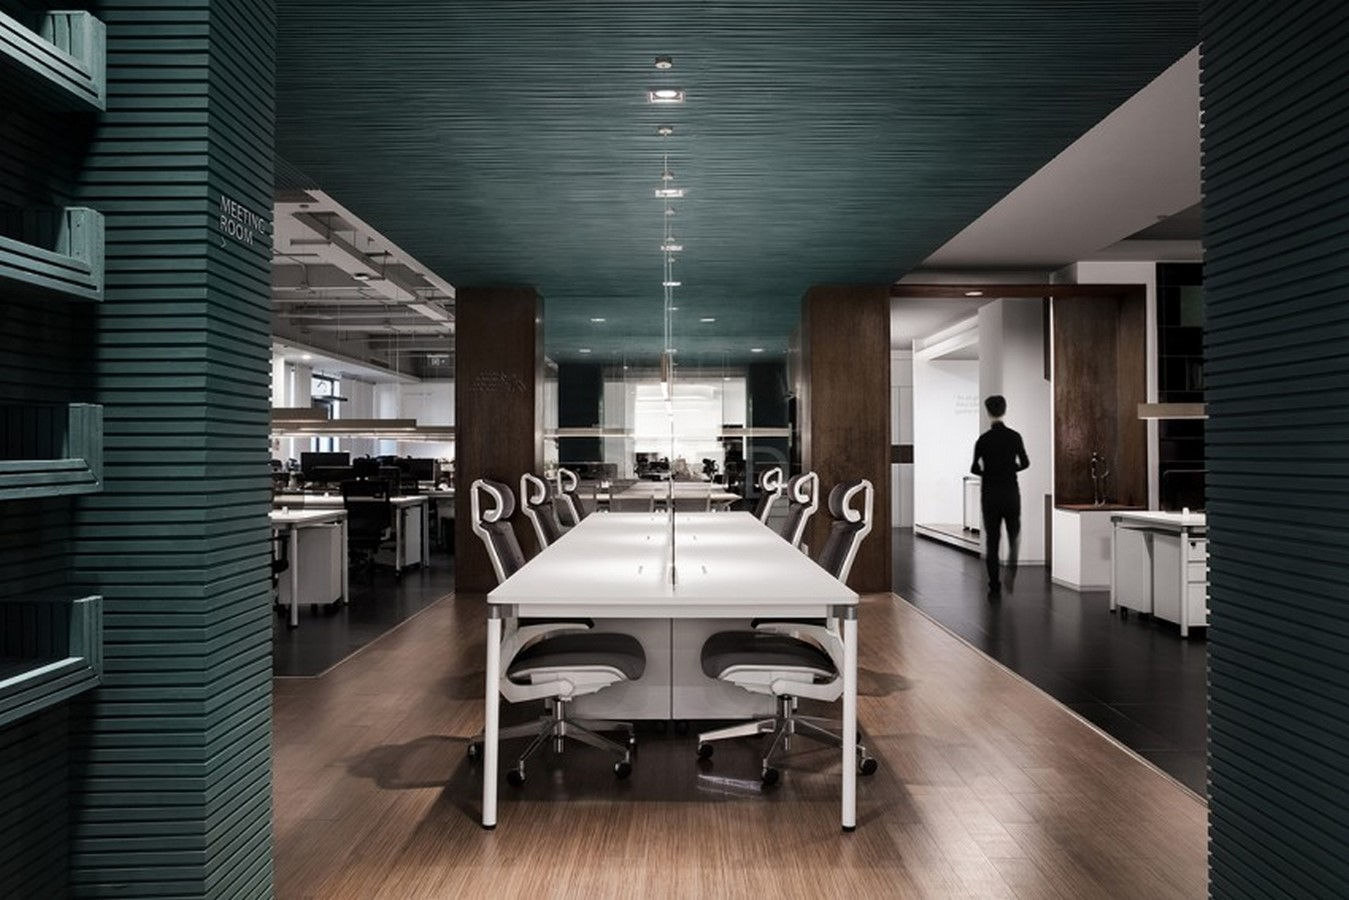 Elephant-Parade Office by CUN Design: Constructed with Bamboo - Sheet9